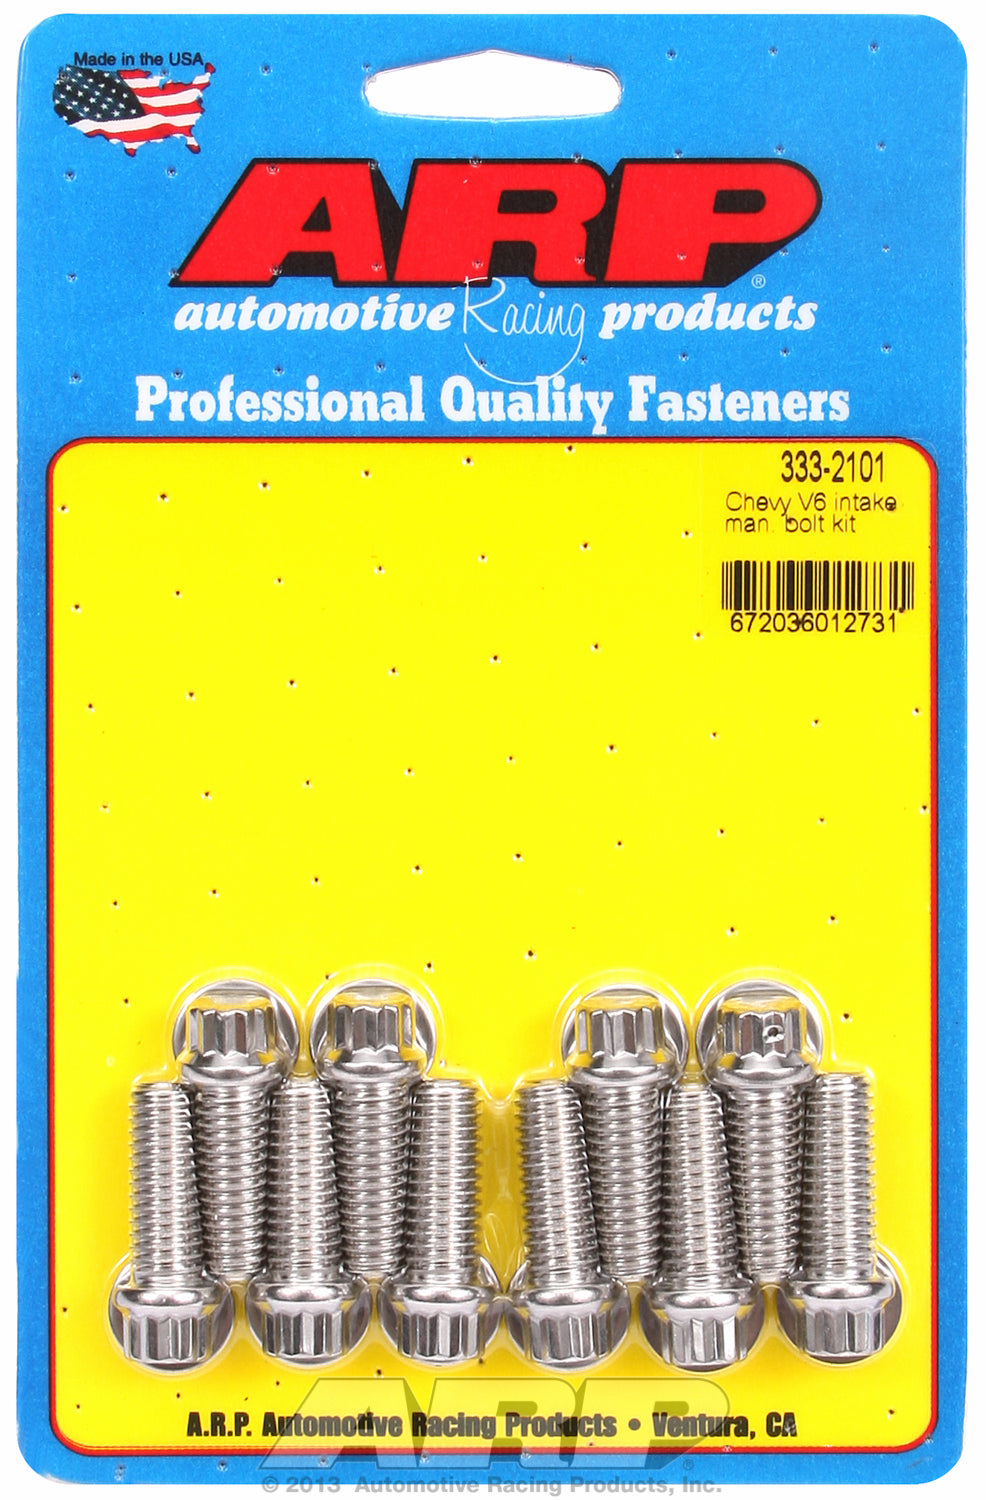 Hex Head Stainless Intake Manifold Bolts for Chevrolet V6 Chevy 90°, 1.000˝, drilled